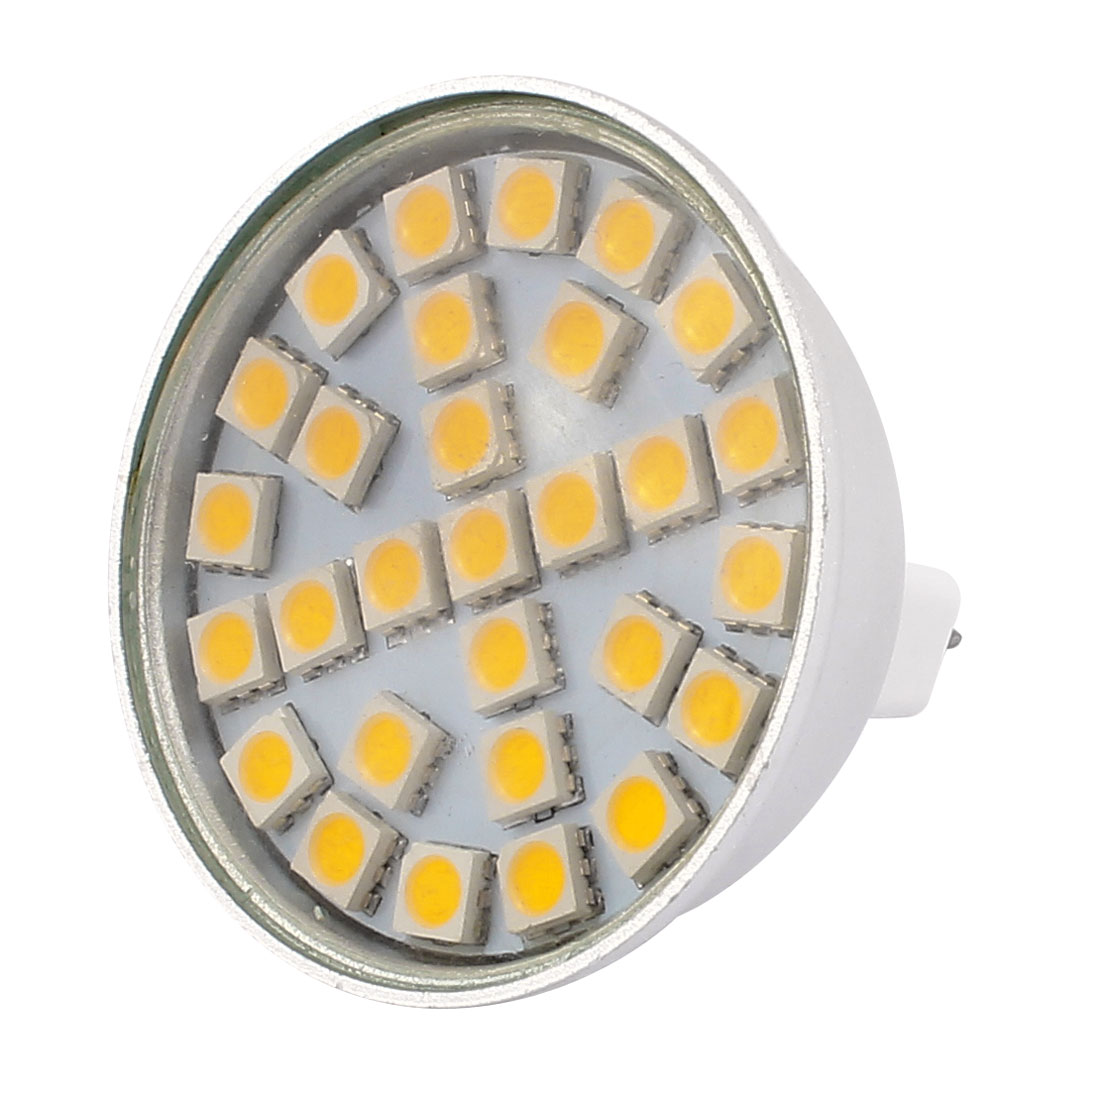 MR16 SMD5050 29LEDs Aluminum Energy Saving LED Lamp Bulb Warm White AC 110V 5W